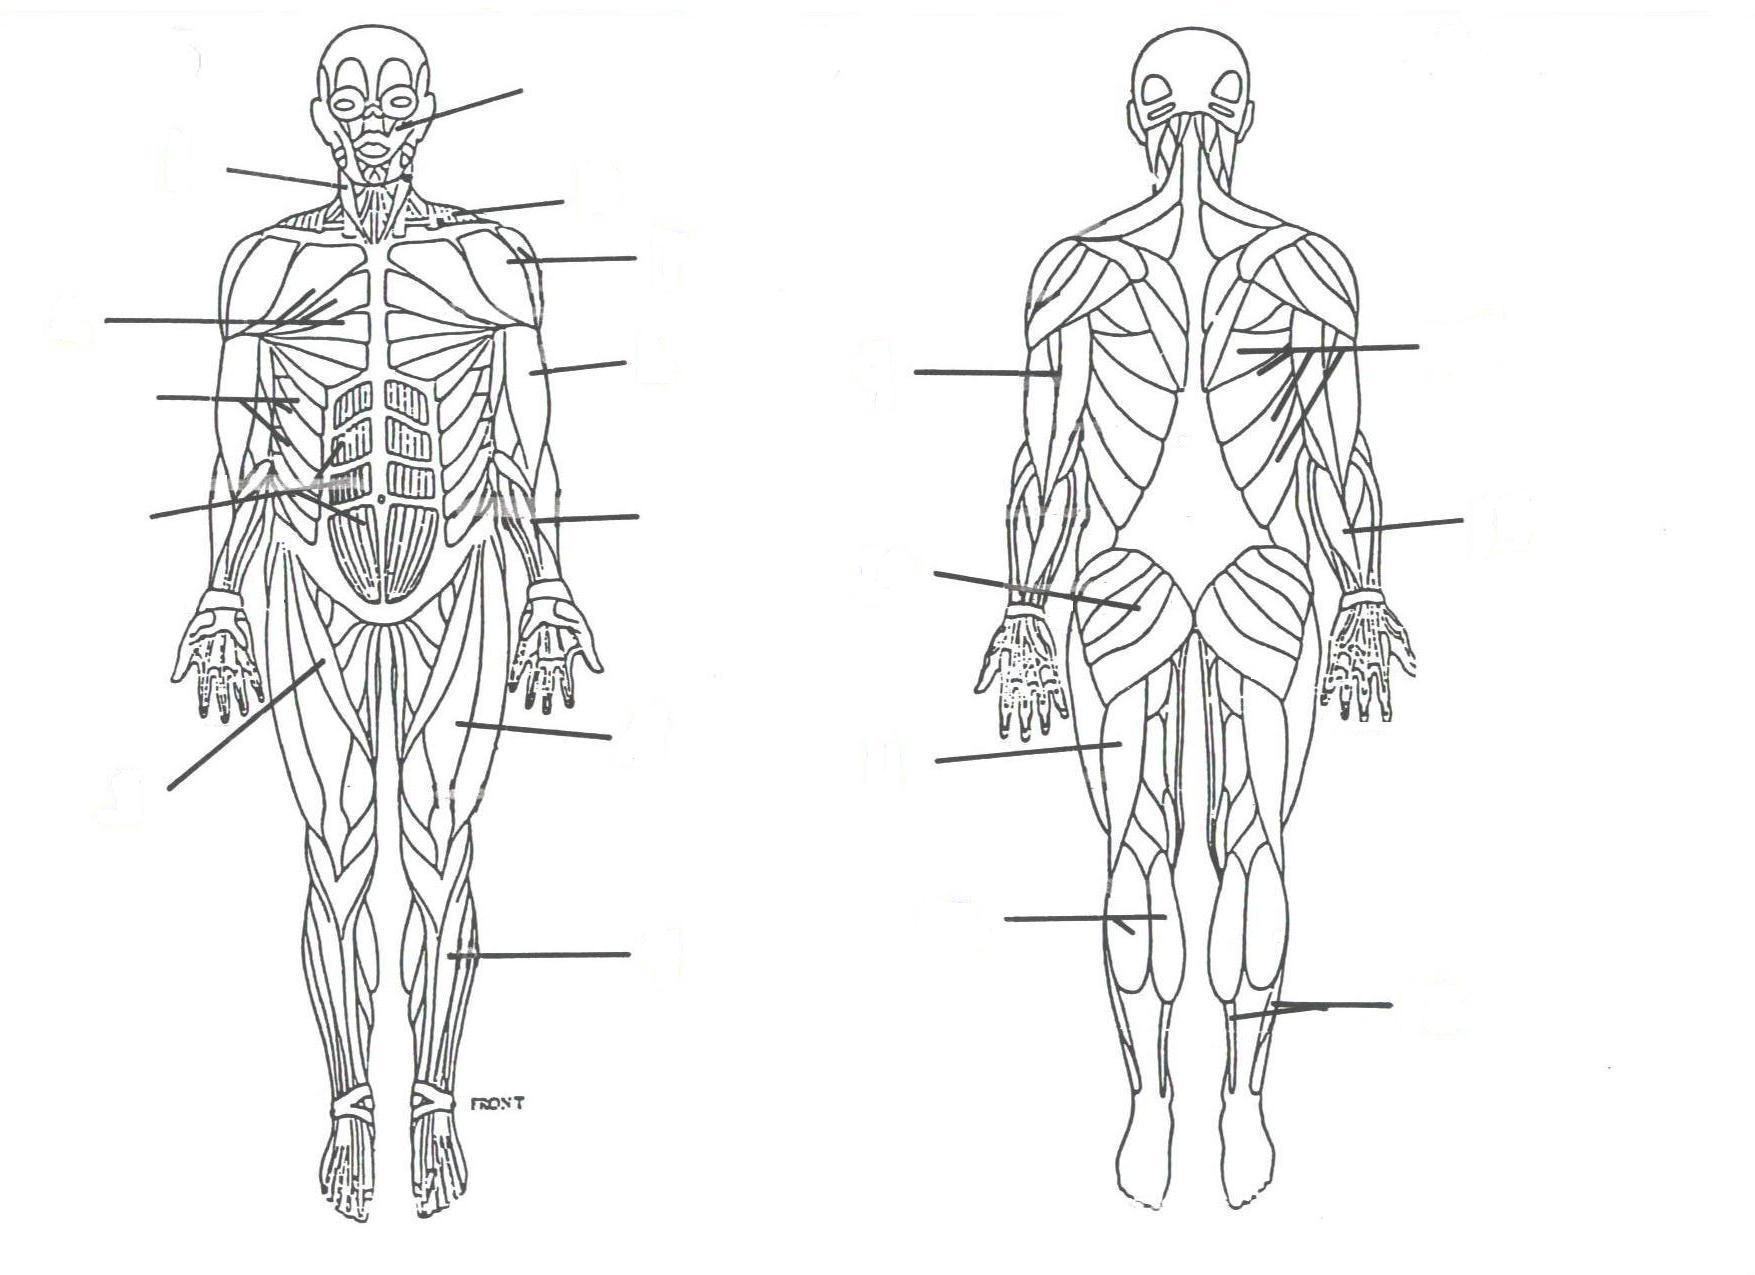 small resolution of muscular system diagram labeled for kids muscular system diagram labeled for kids muscular system diagram